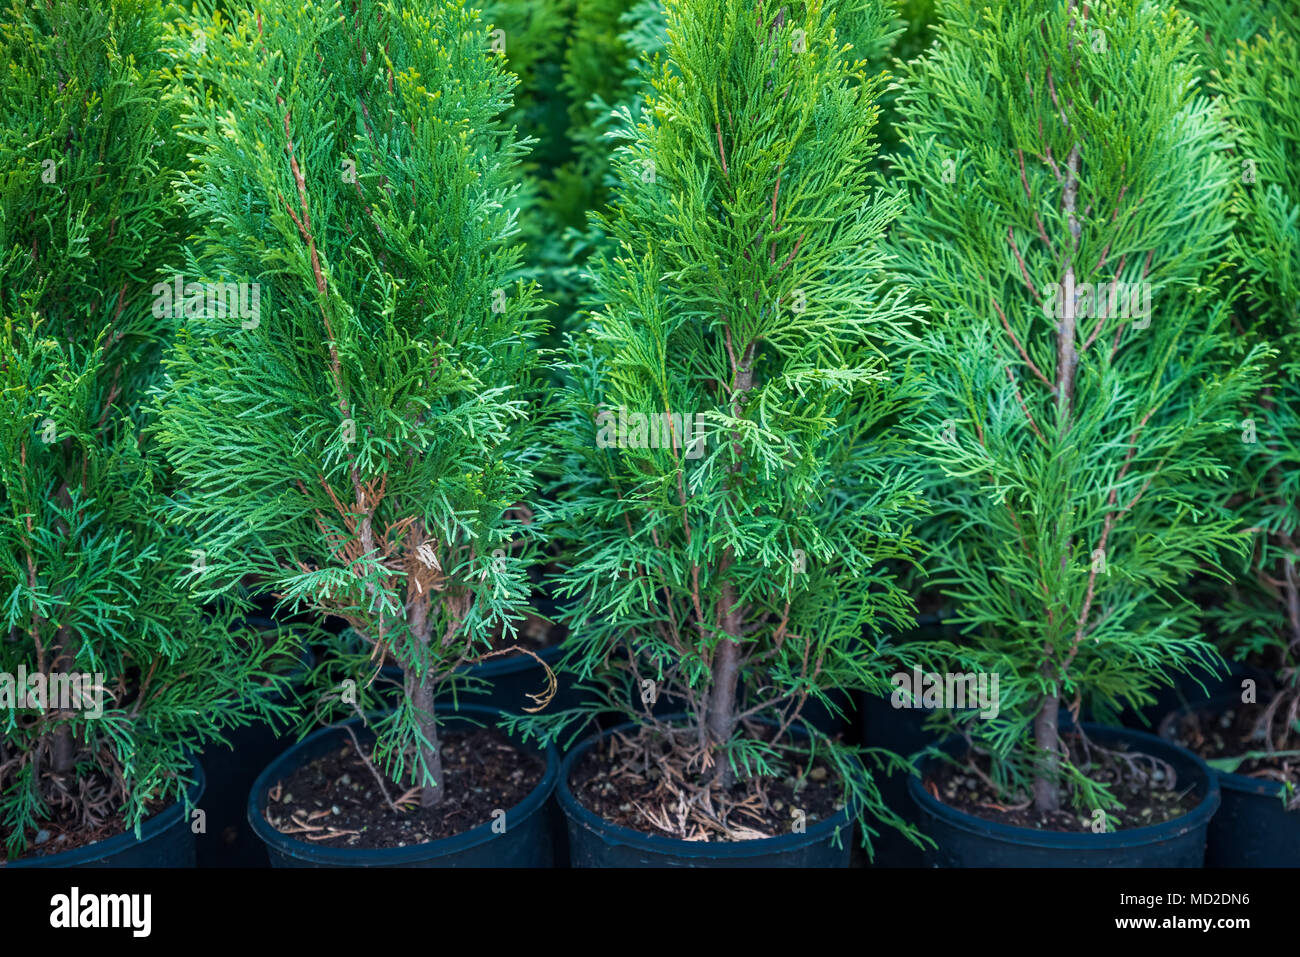 Many Green Hedge of Thuja Trees, or Green hedge of the Tui trees in plastic box for sale - Stock Image